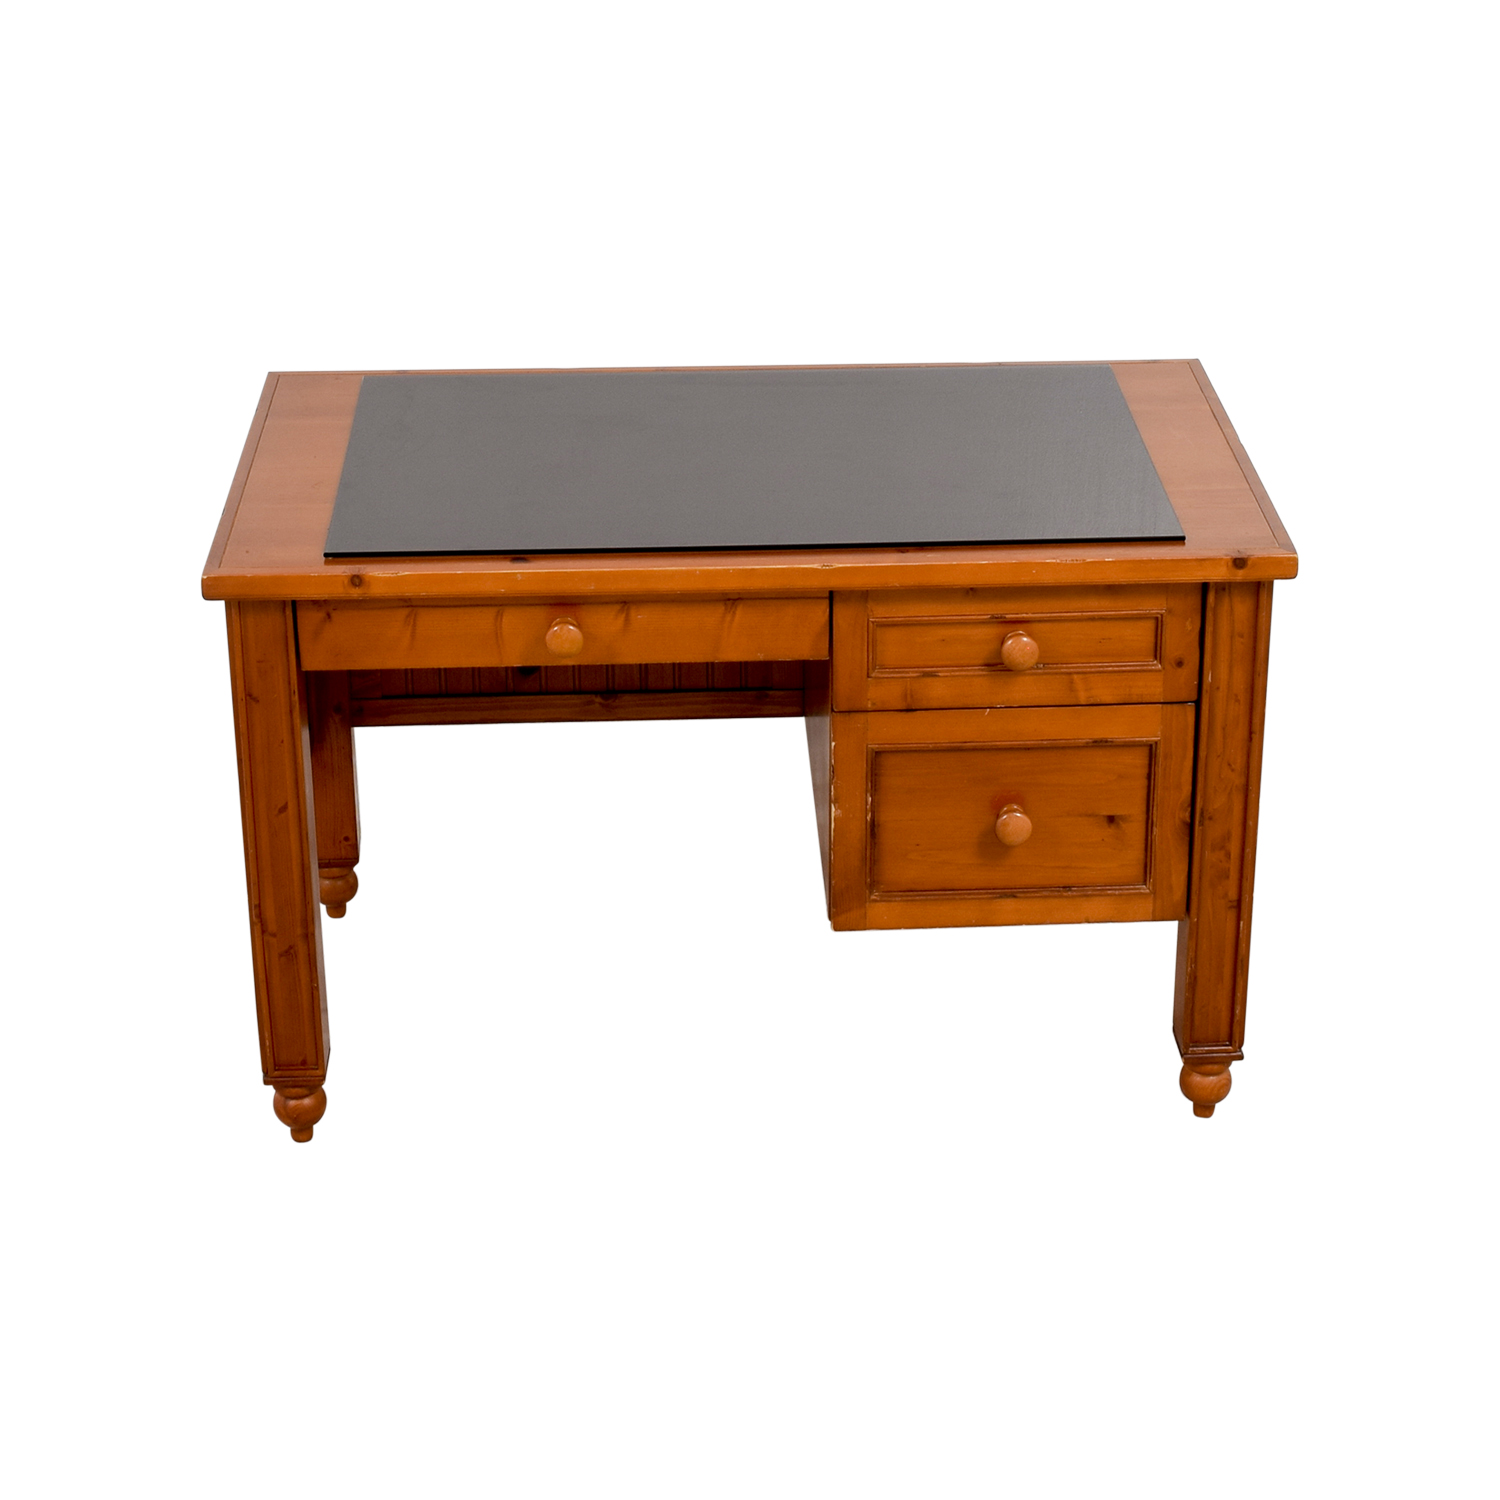 Off pottery barn solid wood desk tables